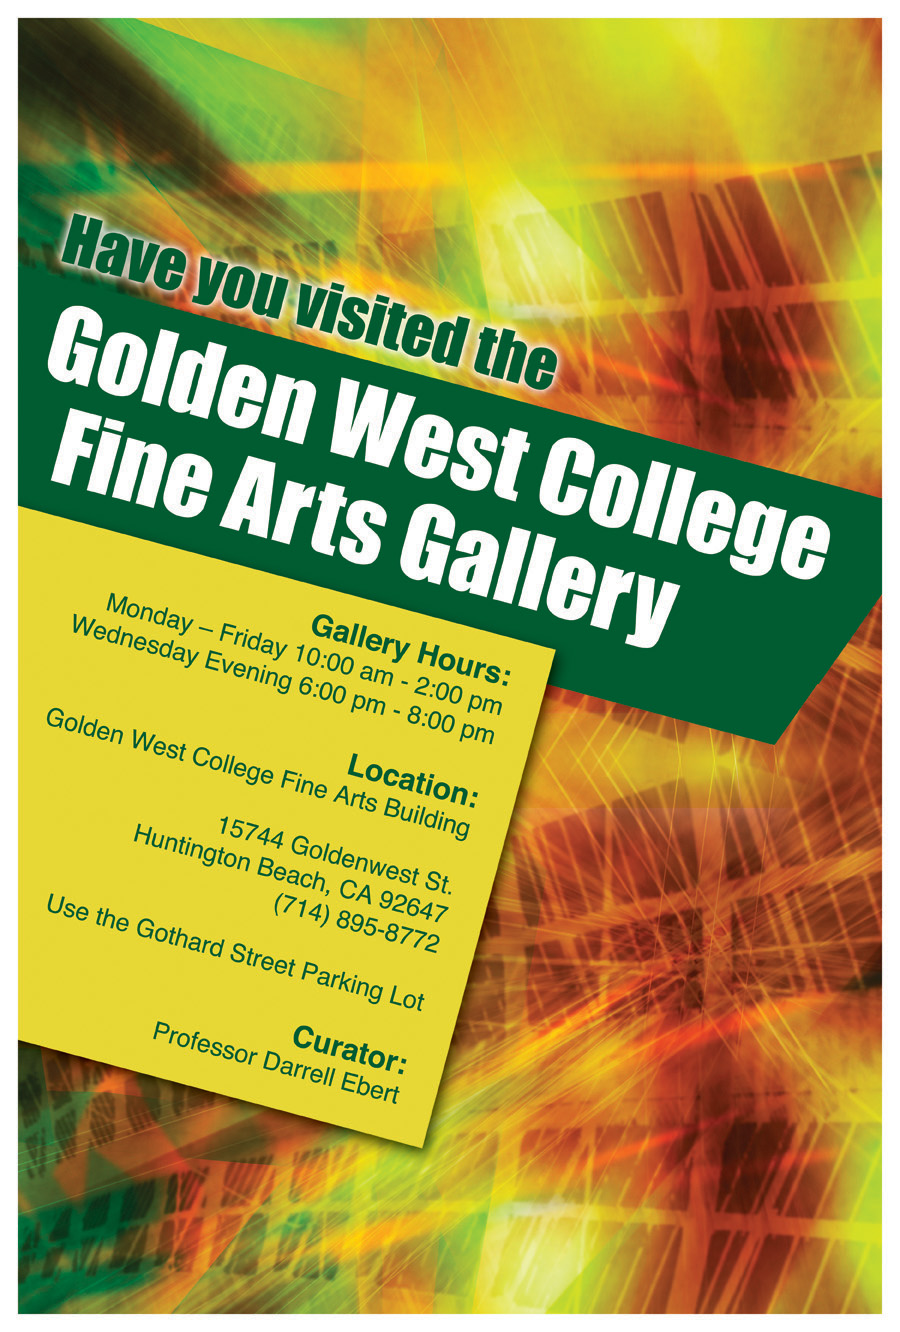 gwc fine arts gallery poster